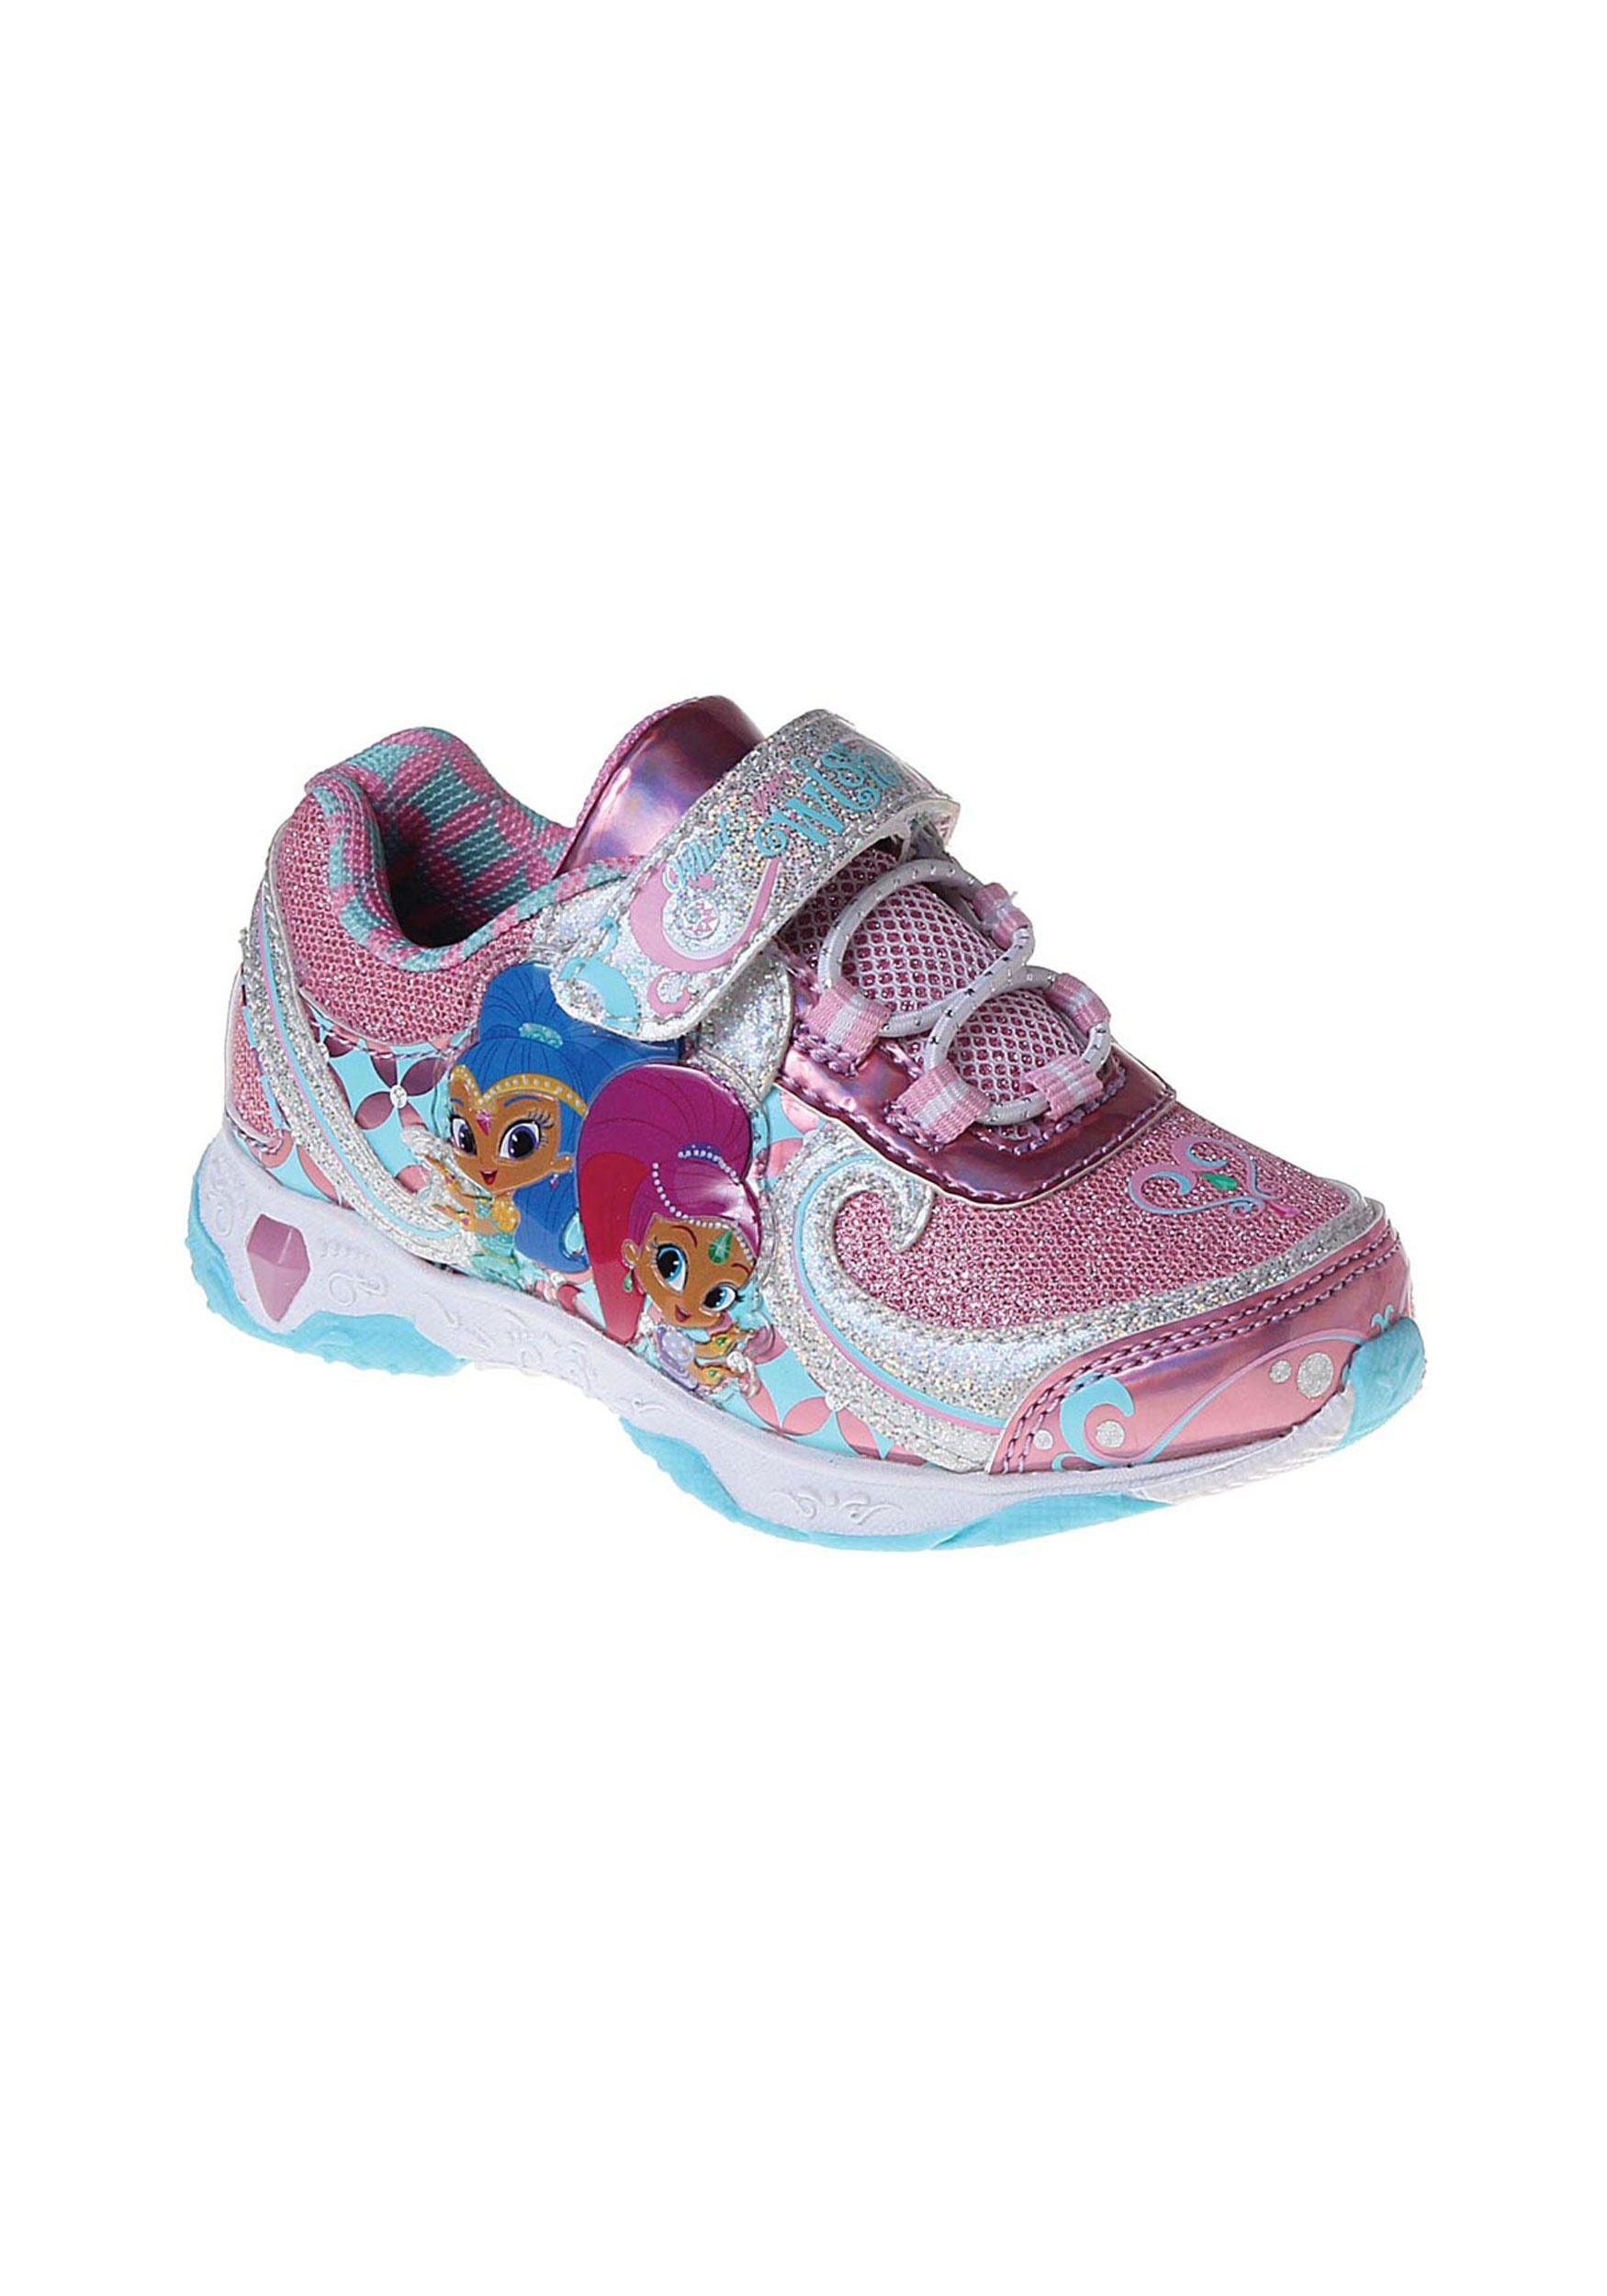 Girls Shimmer and Shine Light Up Sneakers JSCH16499